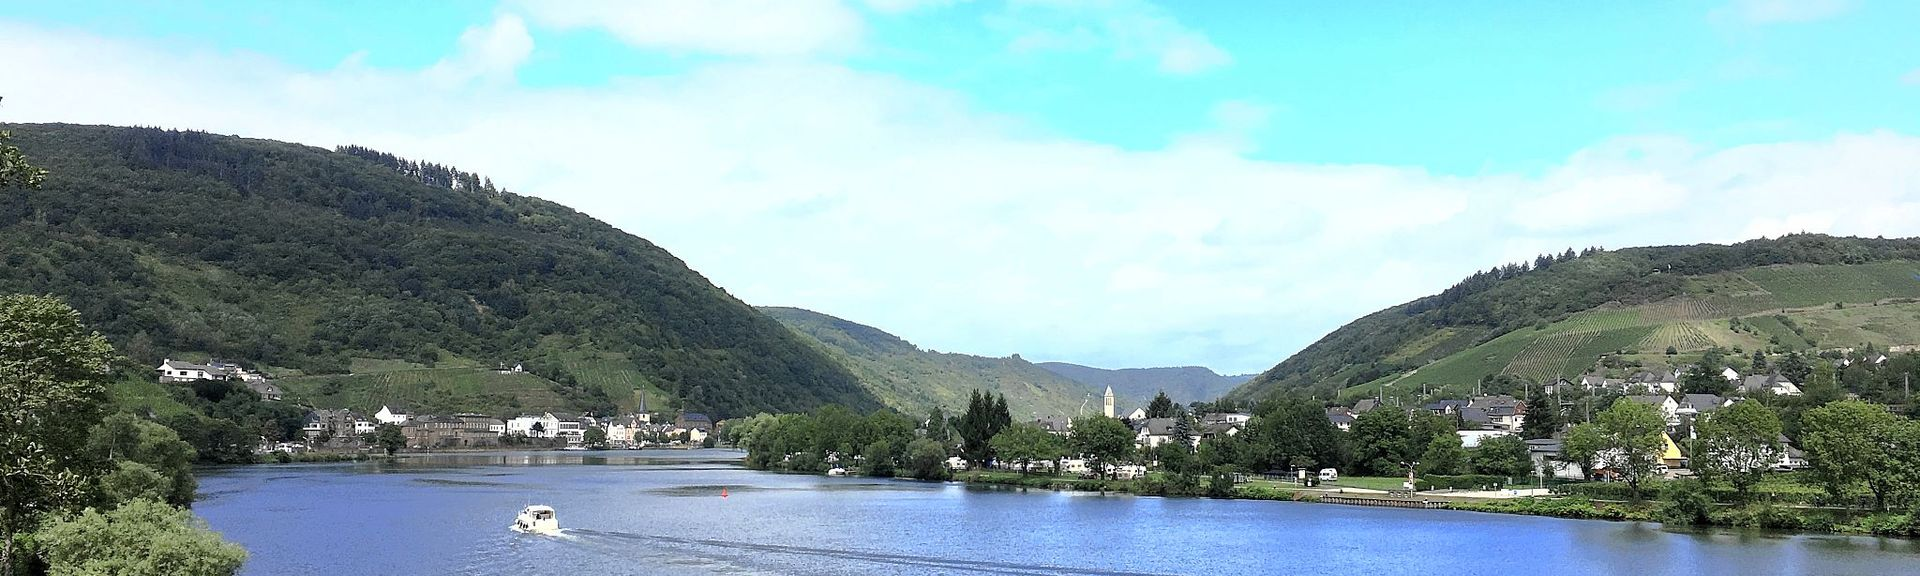 Middle Mosel, Germany